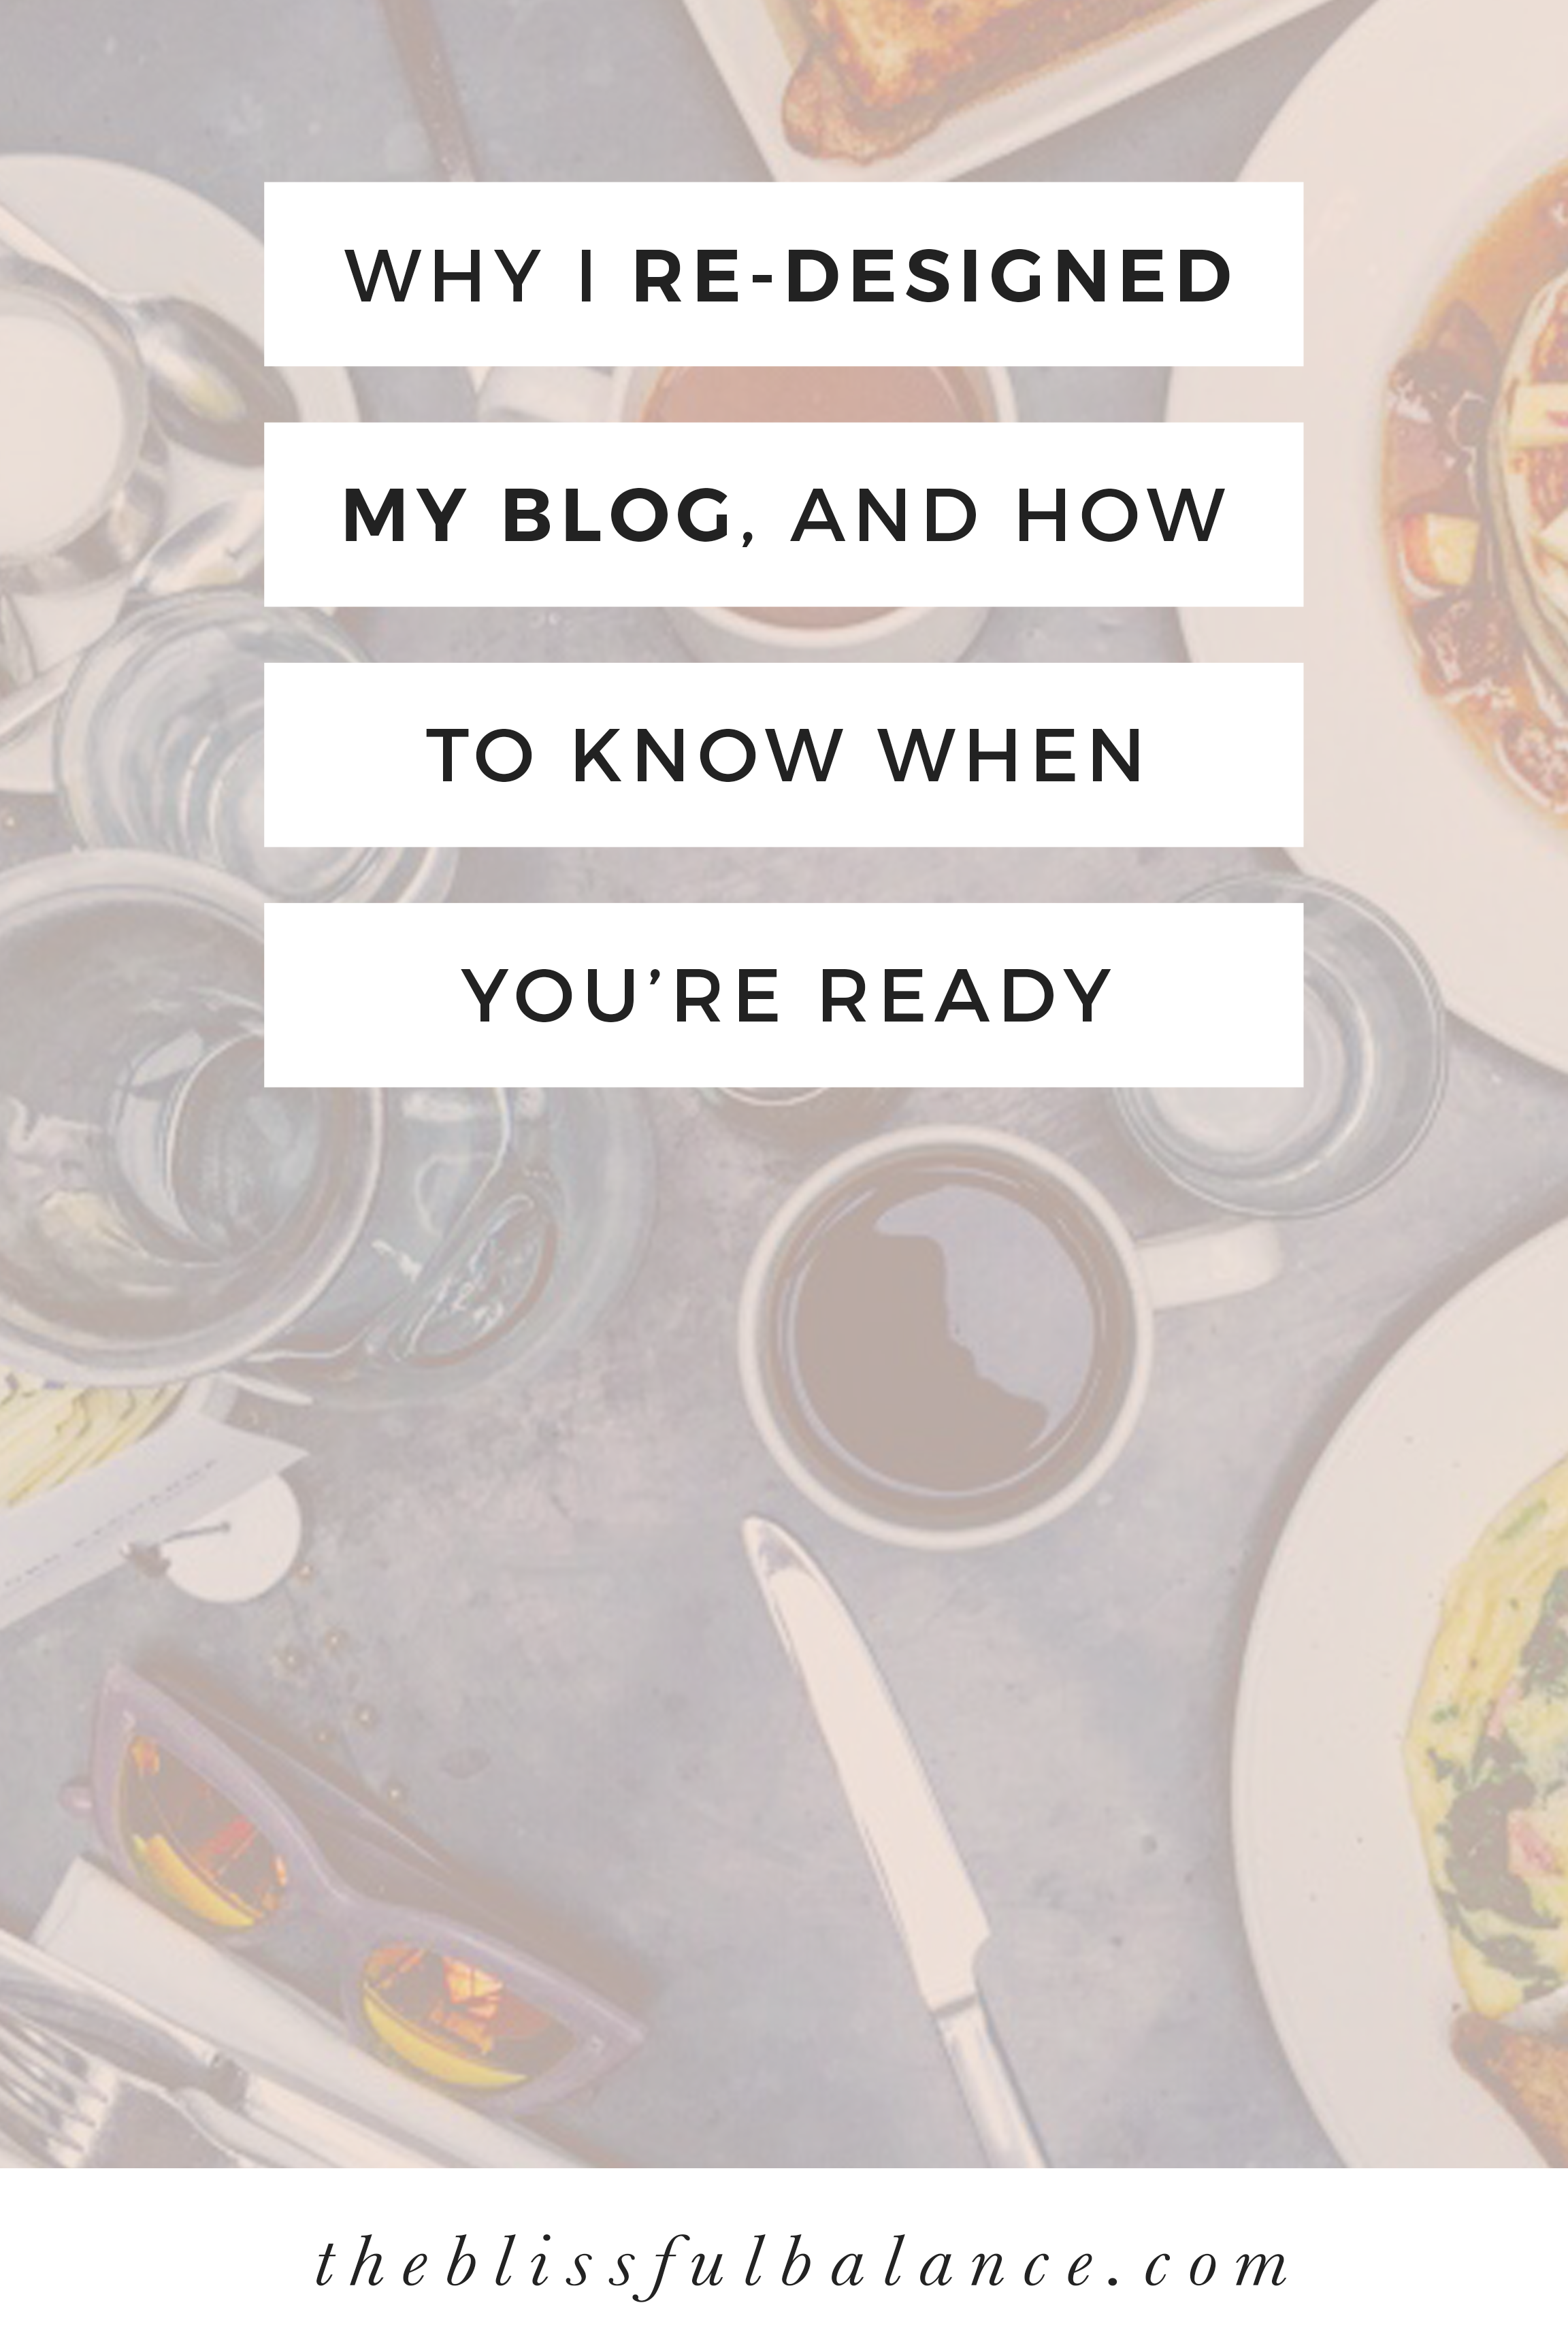 Why I Re-Designed My Blog, and How to Know When You're Ready